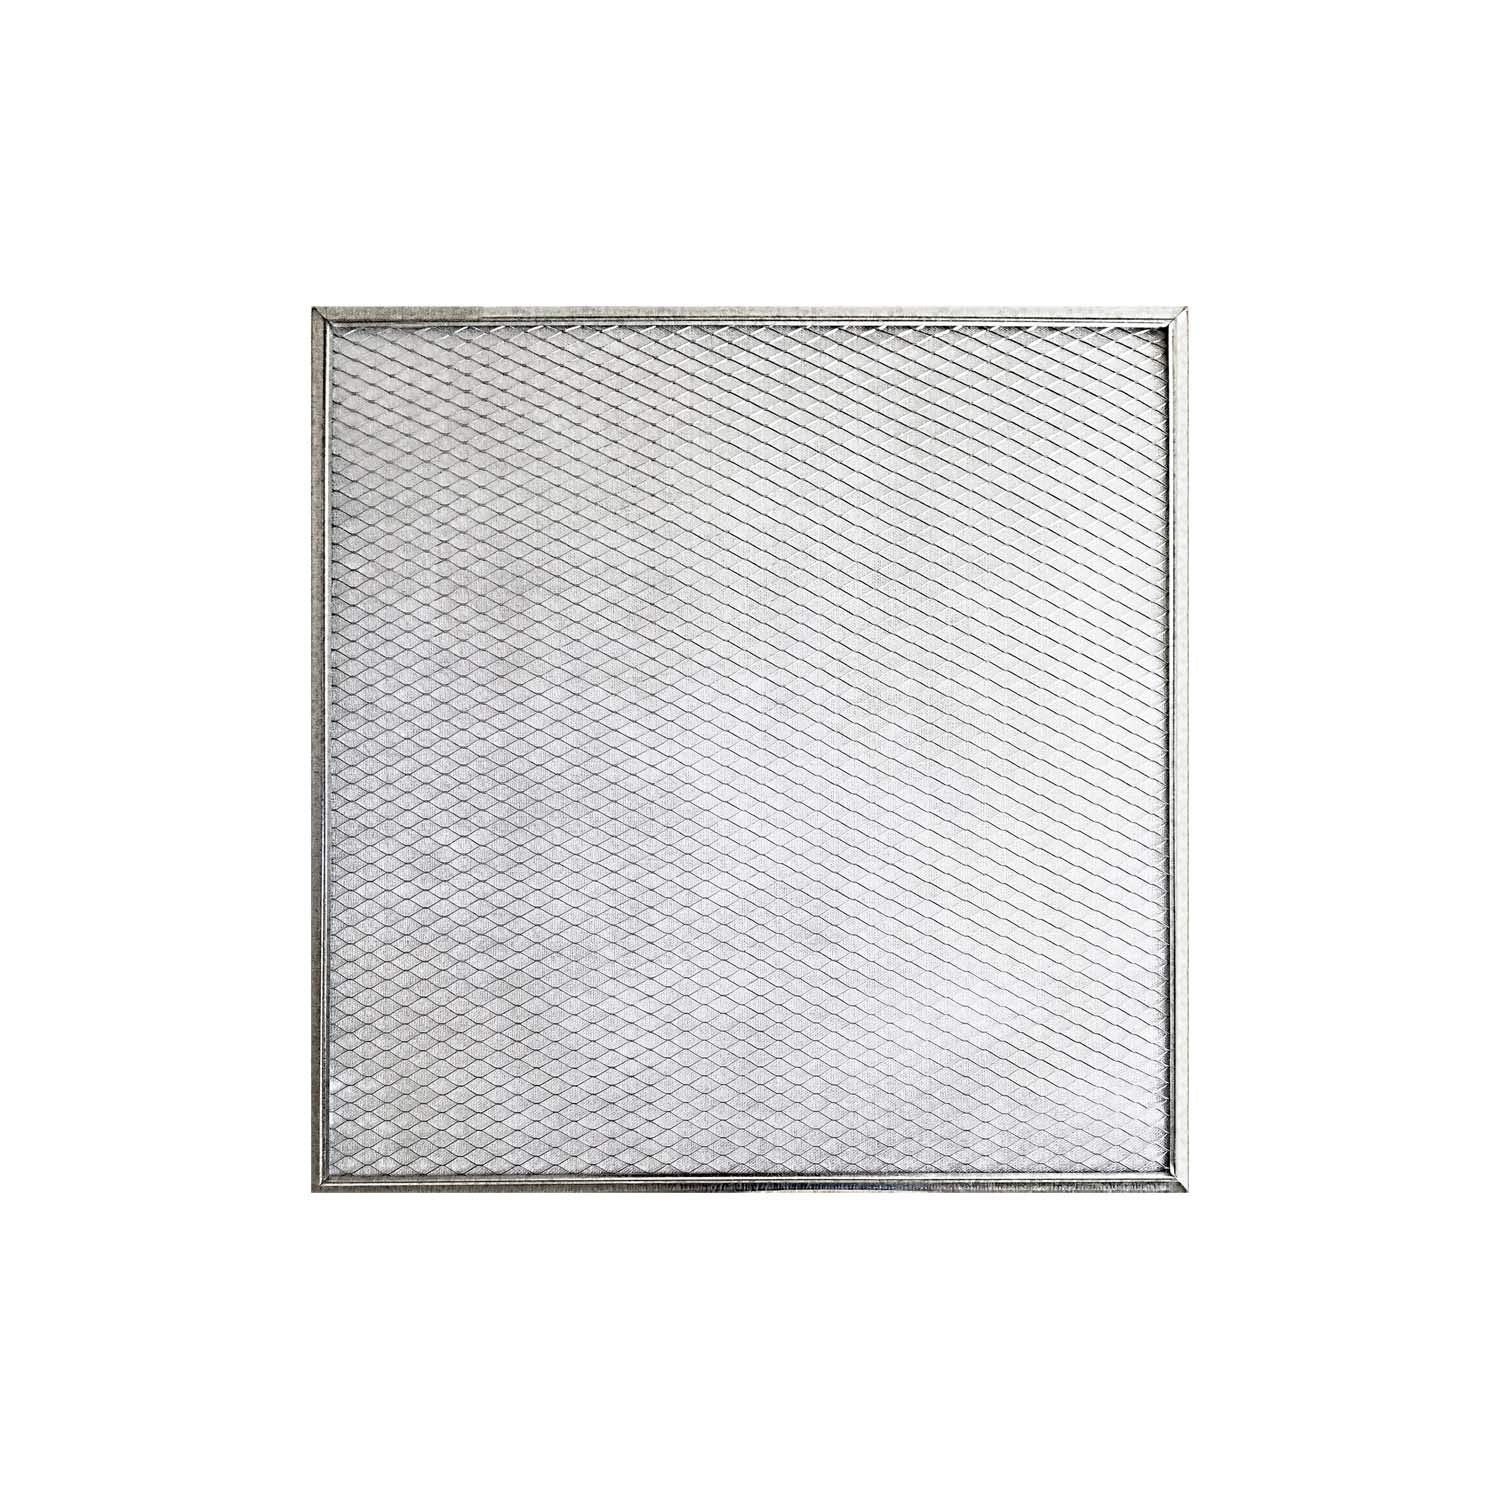 Kilowatts Energy Center The Amazing Washable A/C Furnace Air Filter - Permanent, Reusable, Electrostatic - Silver Frame - Never Buy Another Filter- Lifetime Air Filter